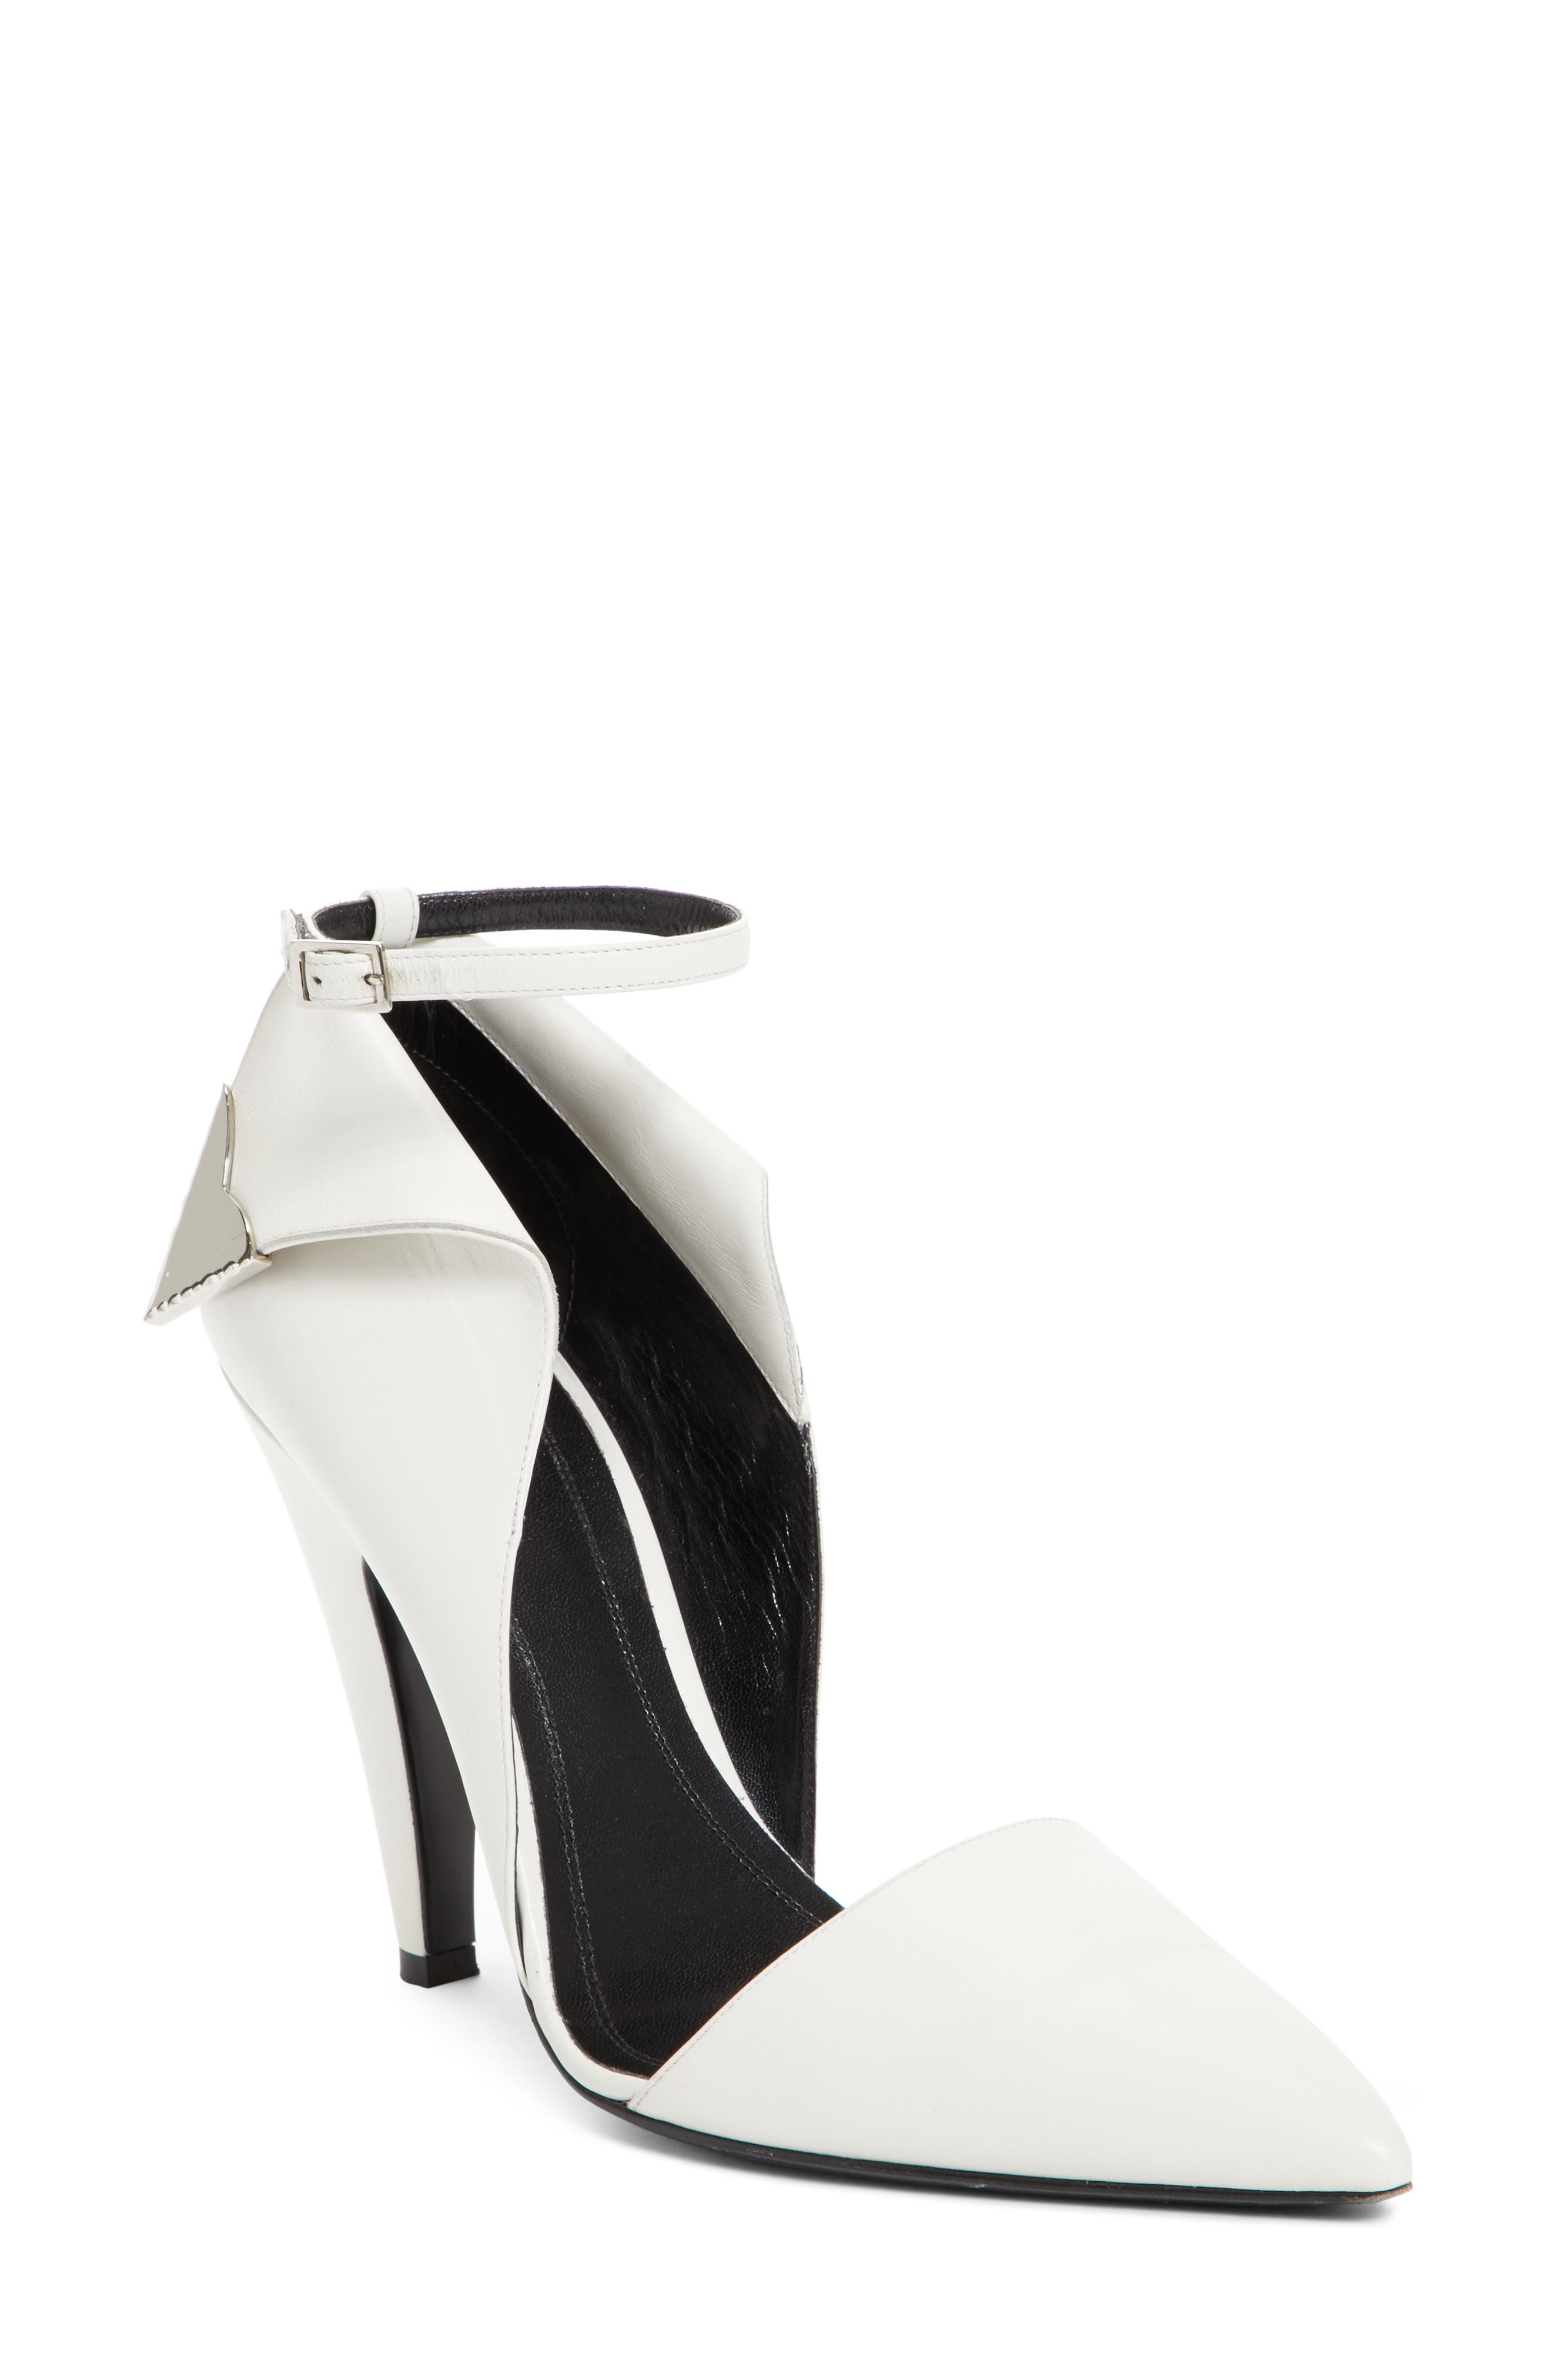 Kadence Ankle Strap Pump,                         Main,                         color, 100